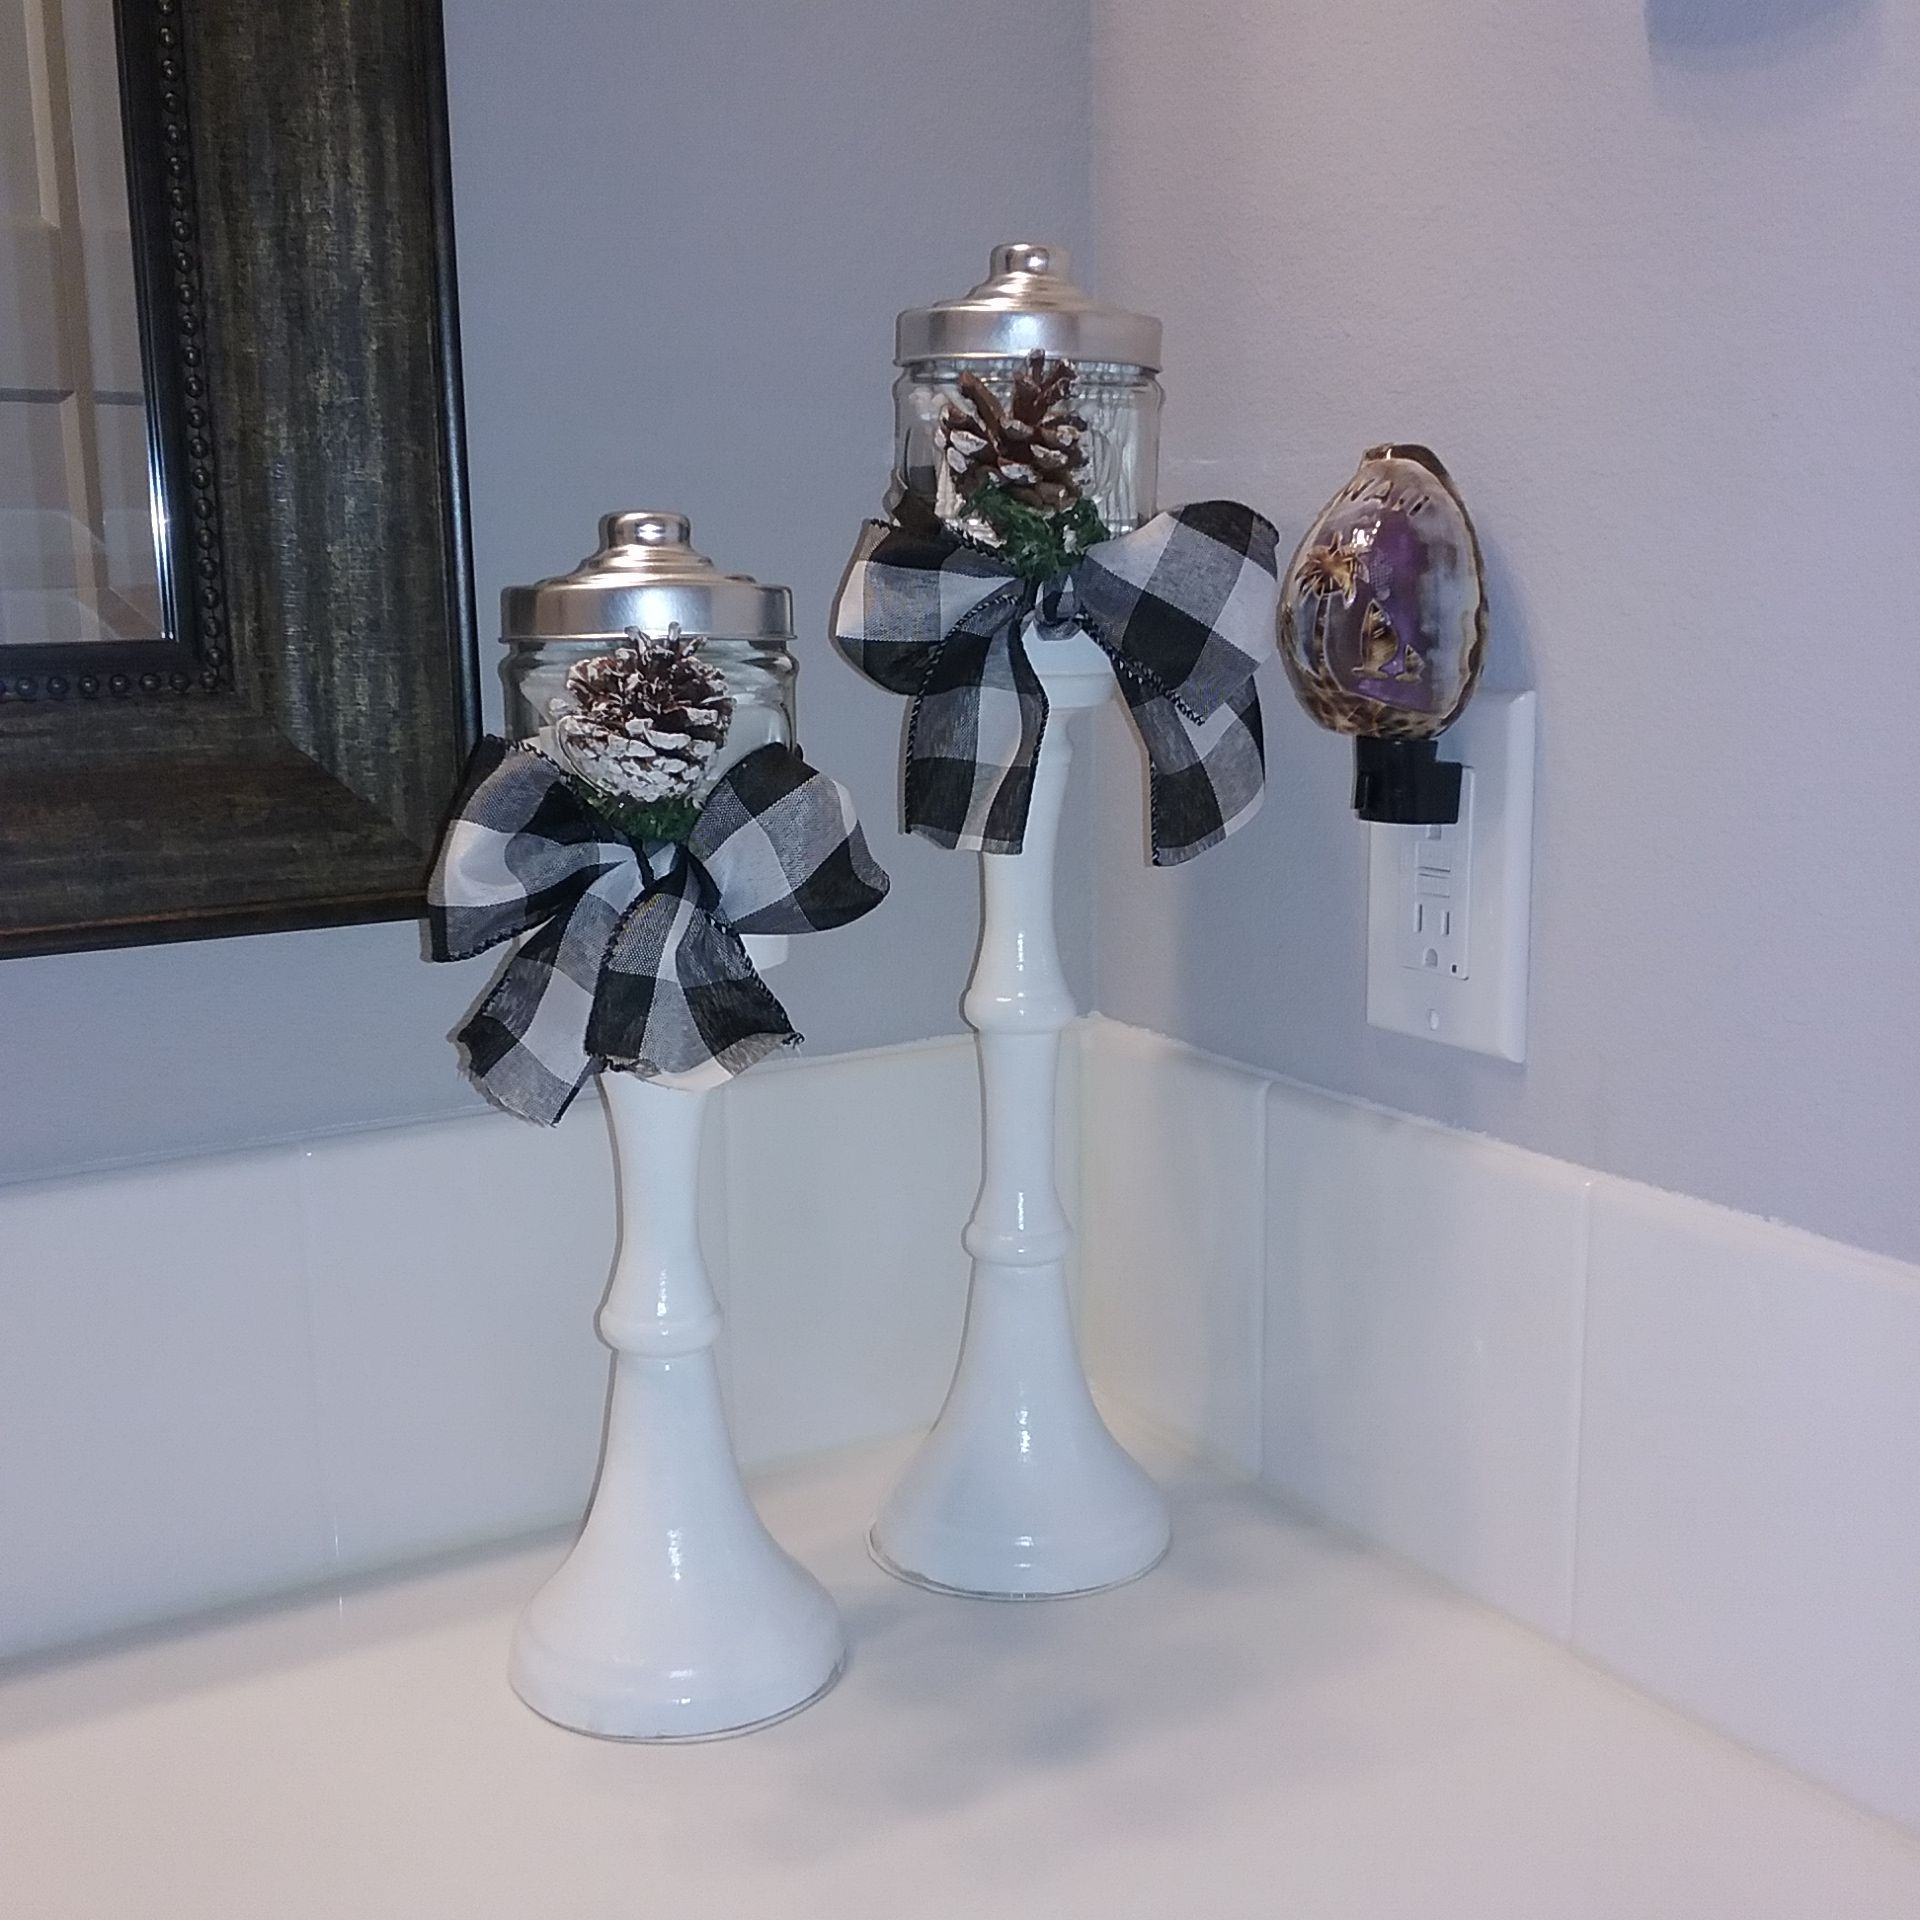 These fun holders were created with old pillar candlestick